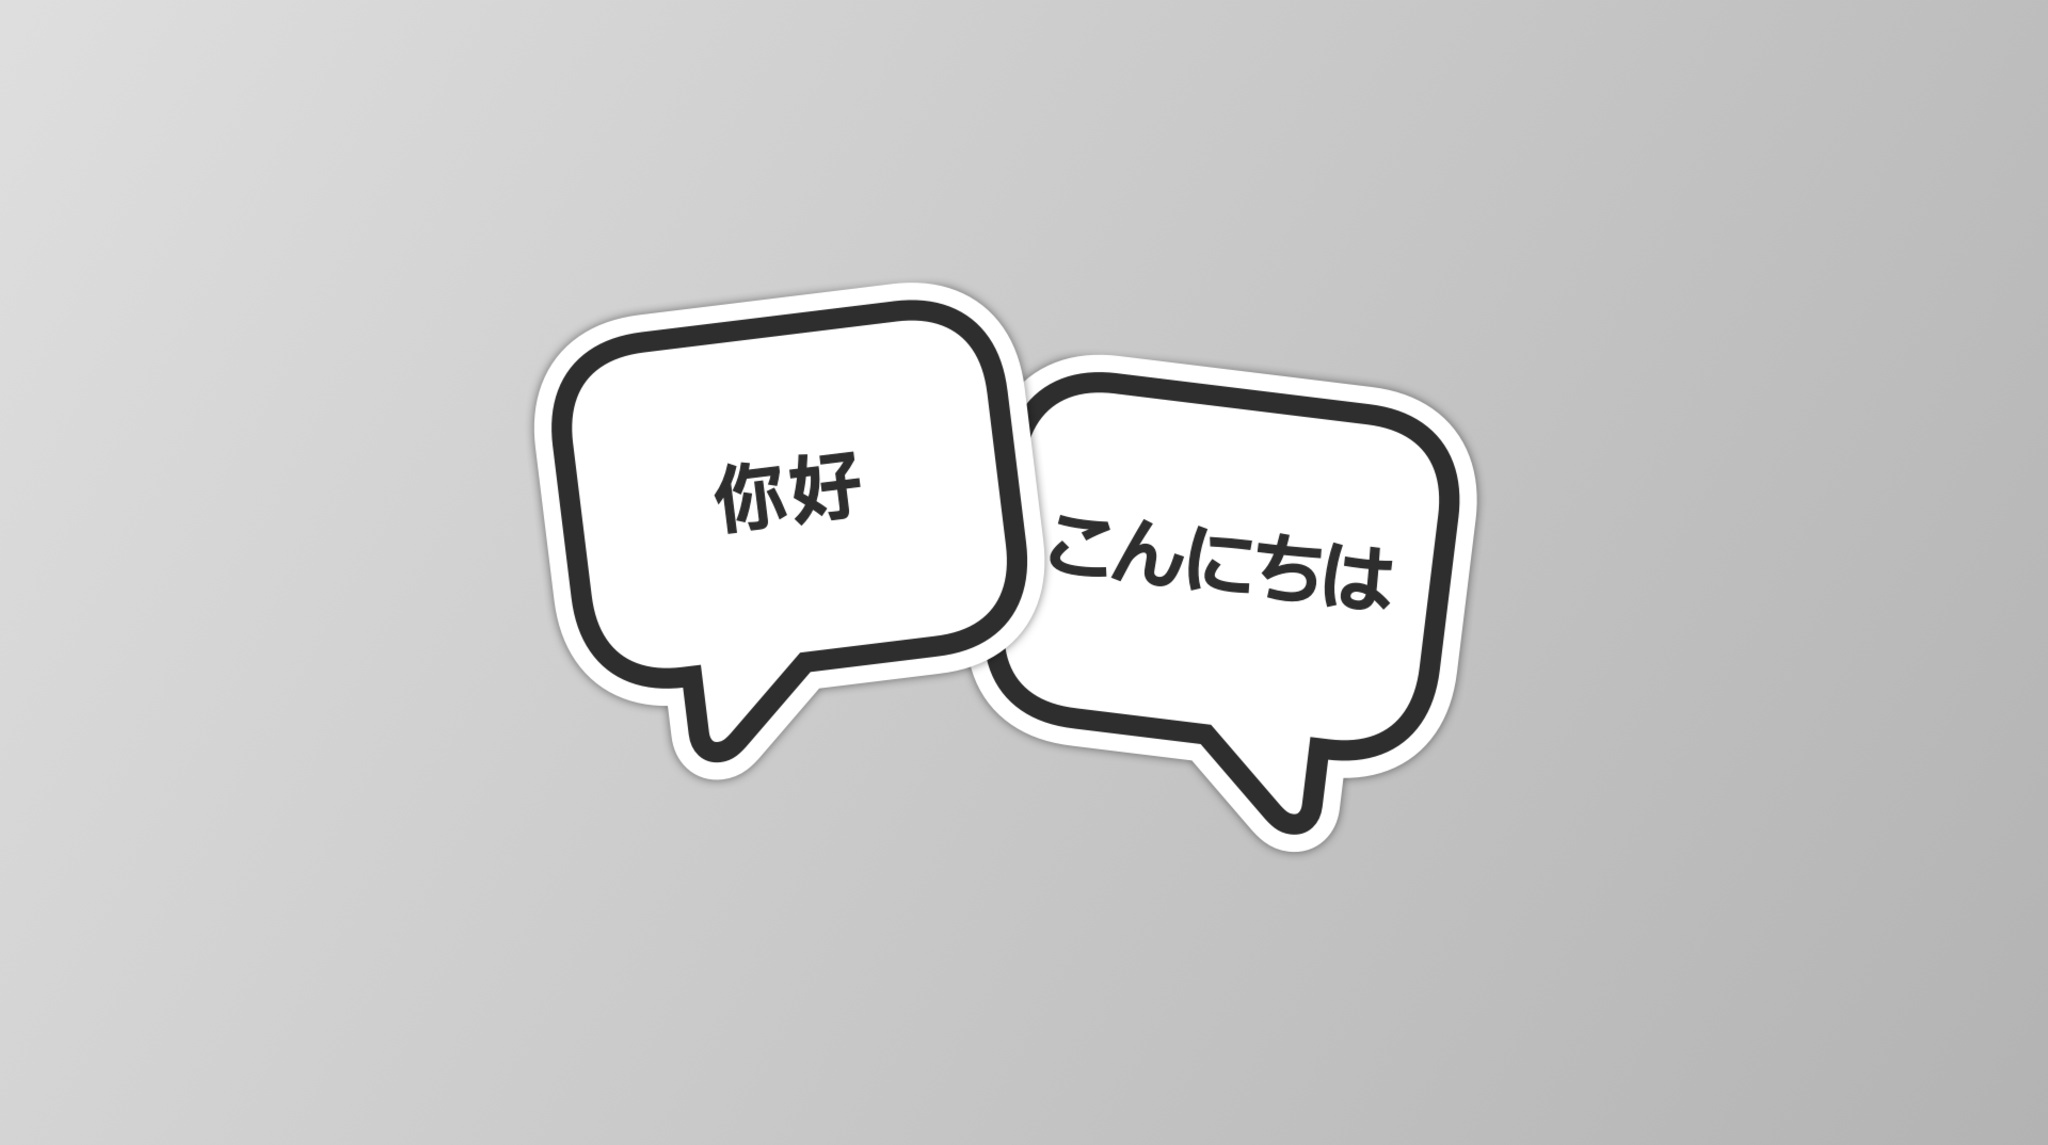 Picture of text bubbles with Japanese and Simplified Chinese text.